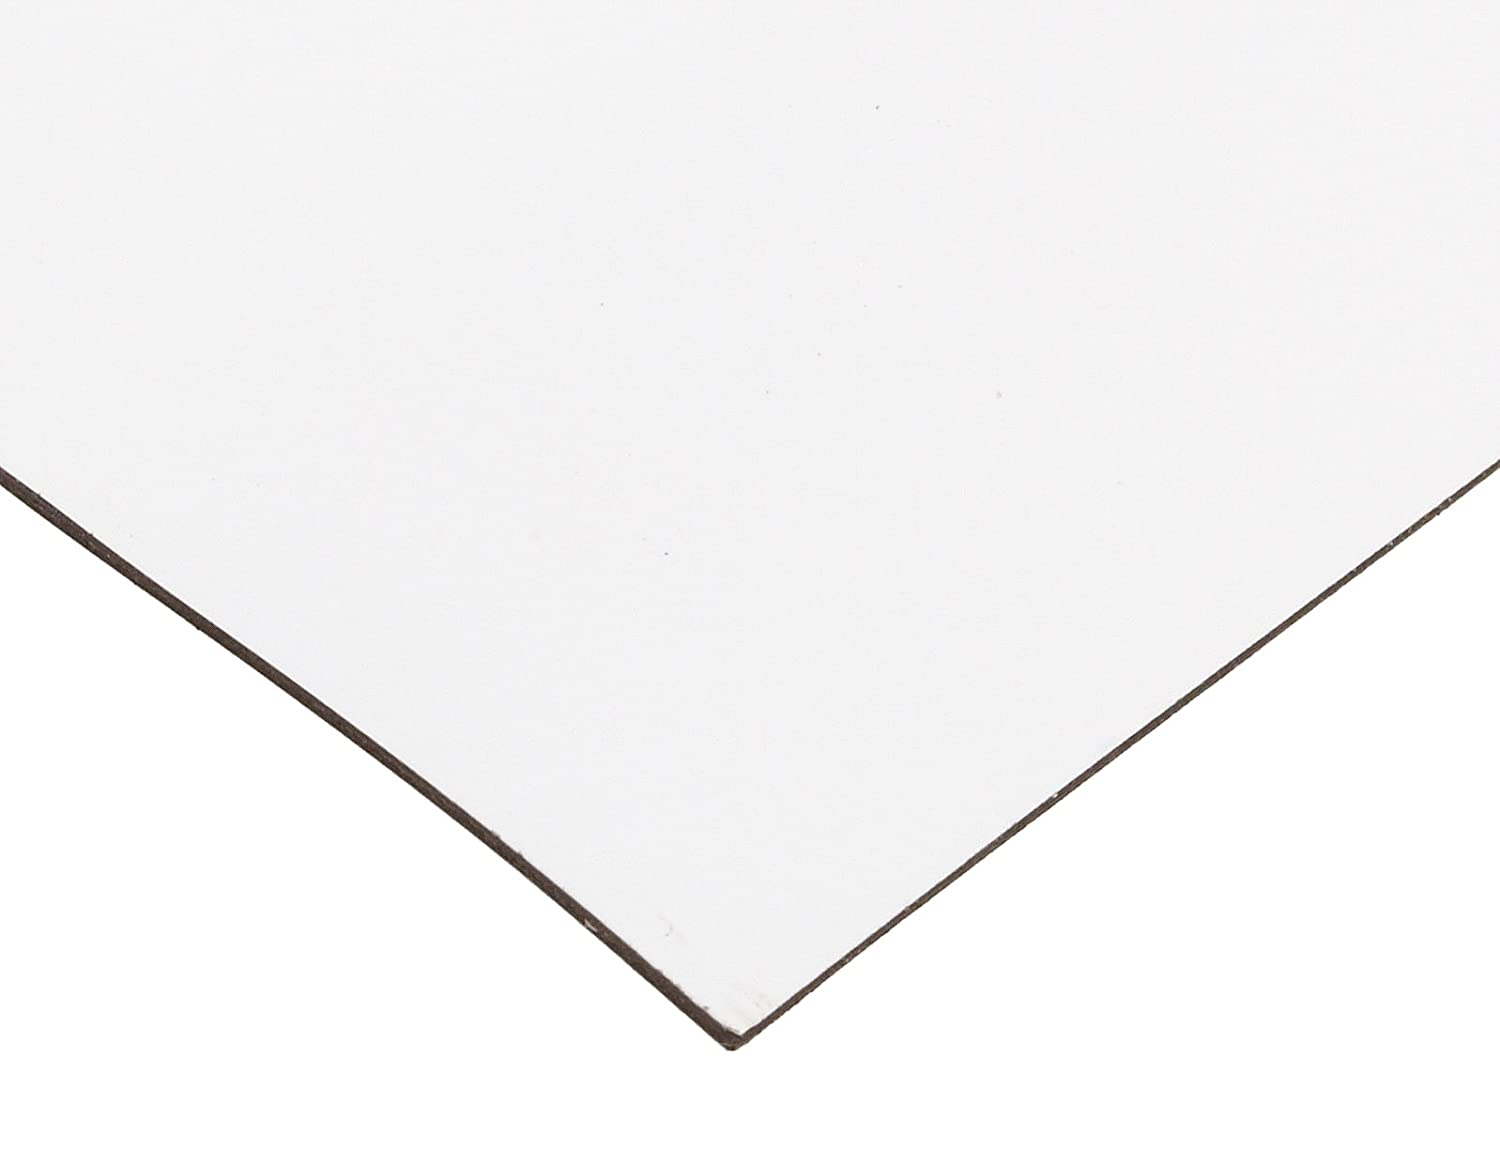 """5 Foot Roll of Flexible Matte White Magnetic Sheeting Medium Weight 24/"""" x 5/'"""